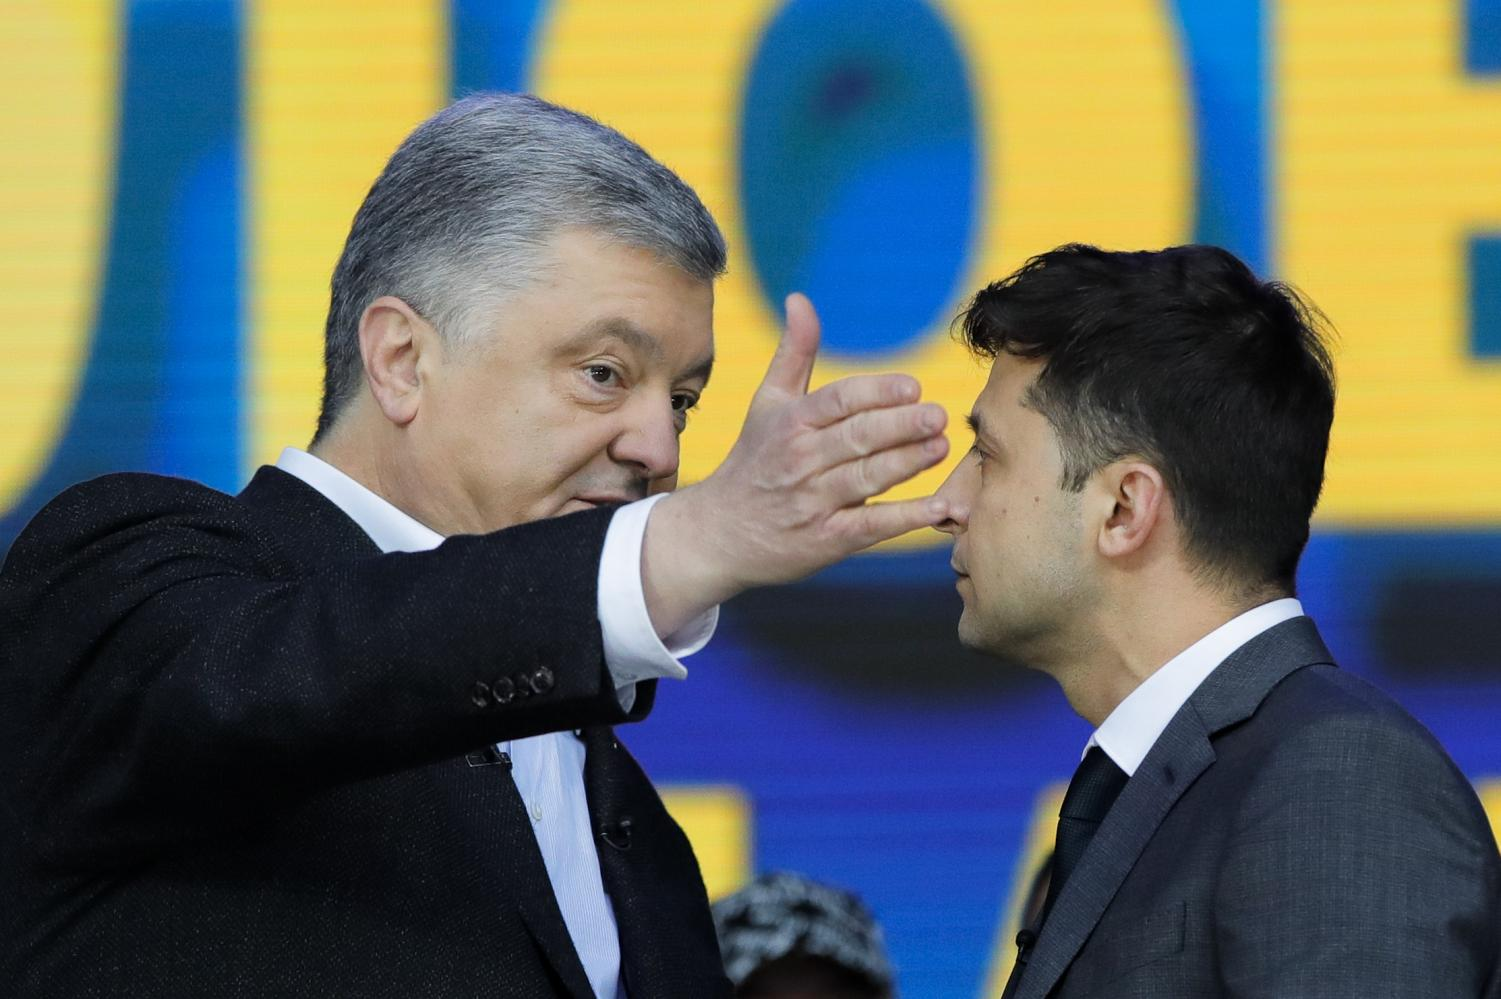 Ukrainian presidential candidate and popular comedian Volodymyr Zelenskiy, right, watches as Ukrainian President Petro Poroshenko gestures during their final electoral campaign debate at the Olympic stadium in Kiev, Ukraine, Friday, April 19, 2019. Friday is the last official day of election canvassing in Ukraine as all presidential candidates and their campaigns will be barred from campaigning on Saturday, the day before the vote.